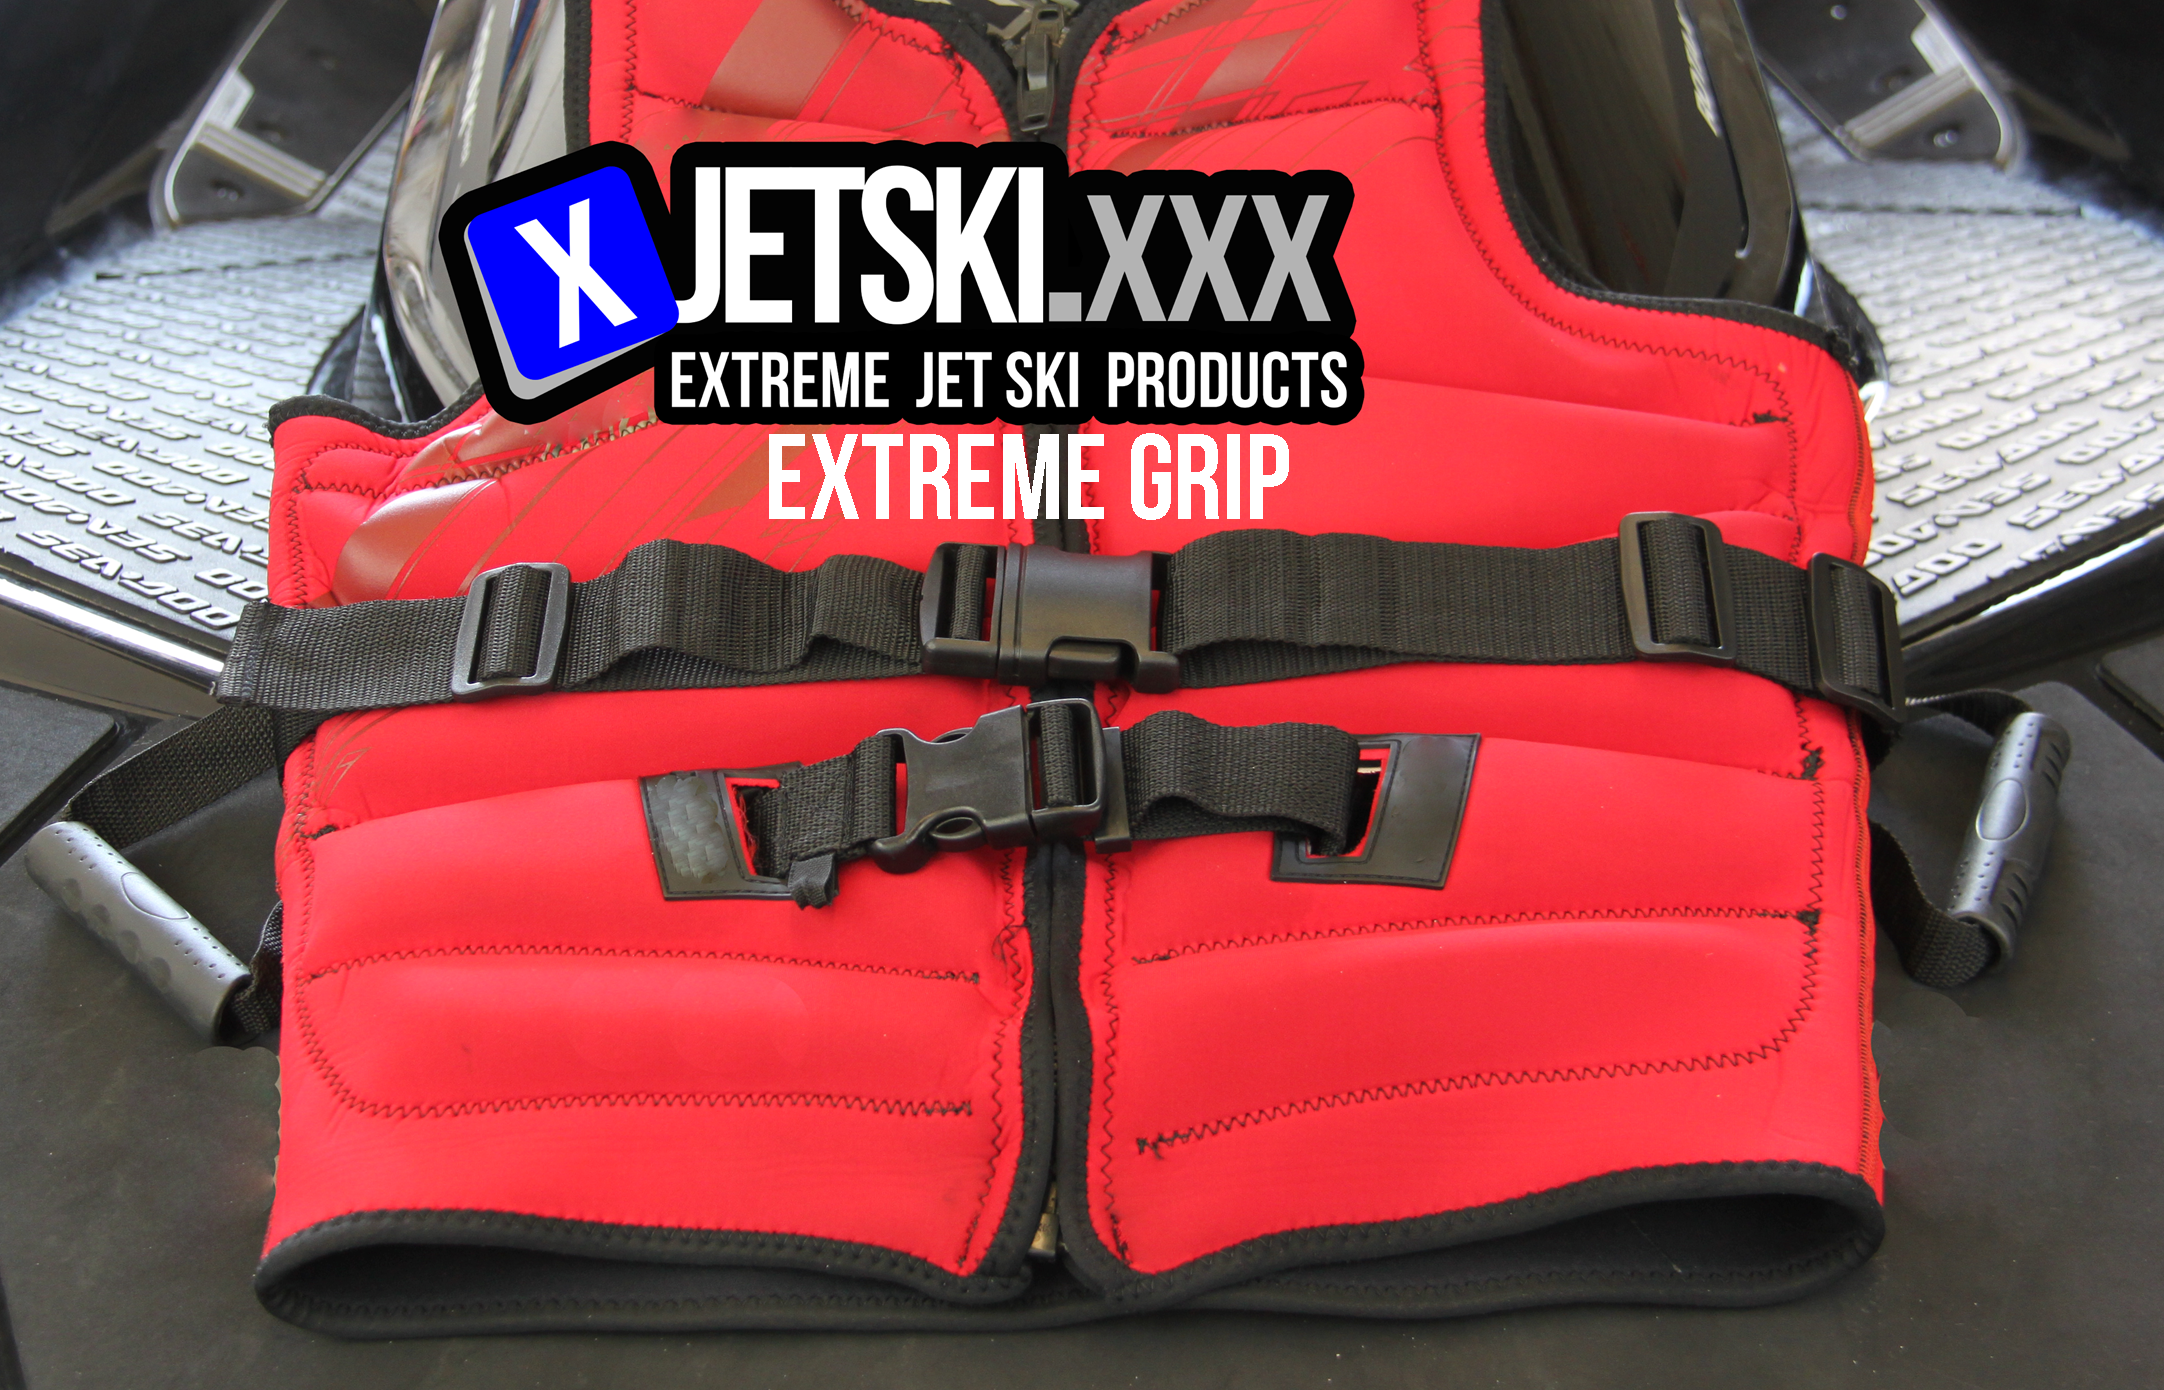 ext-grip-image